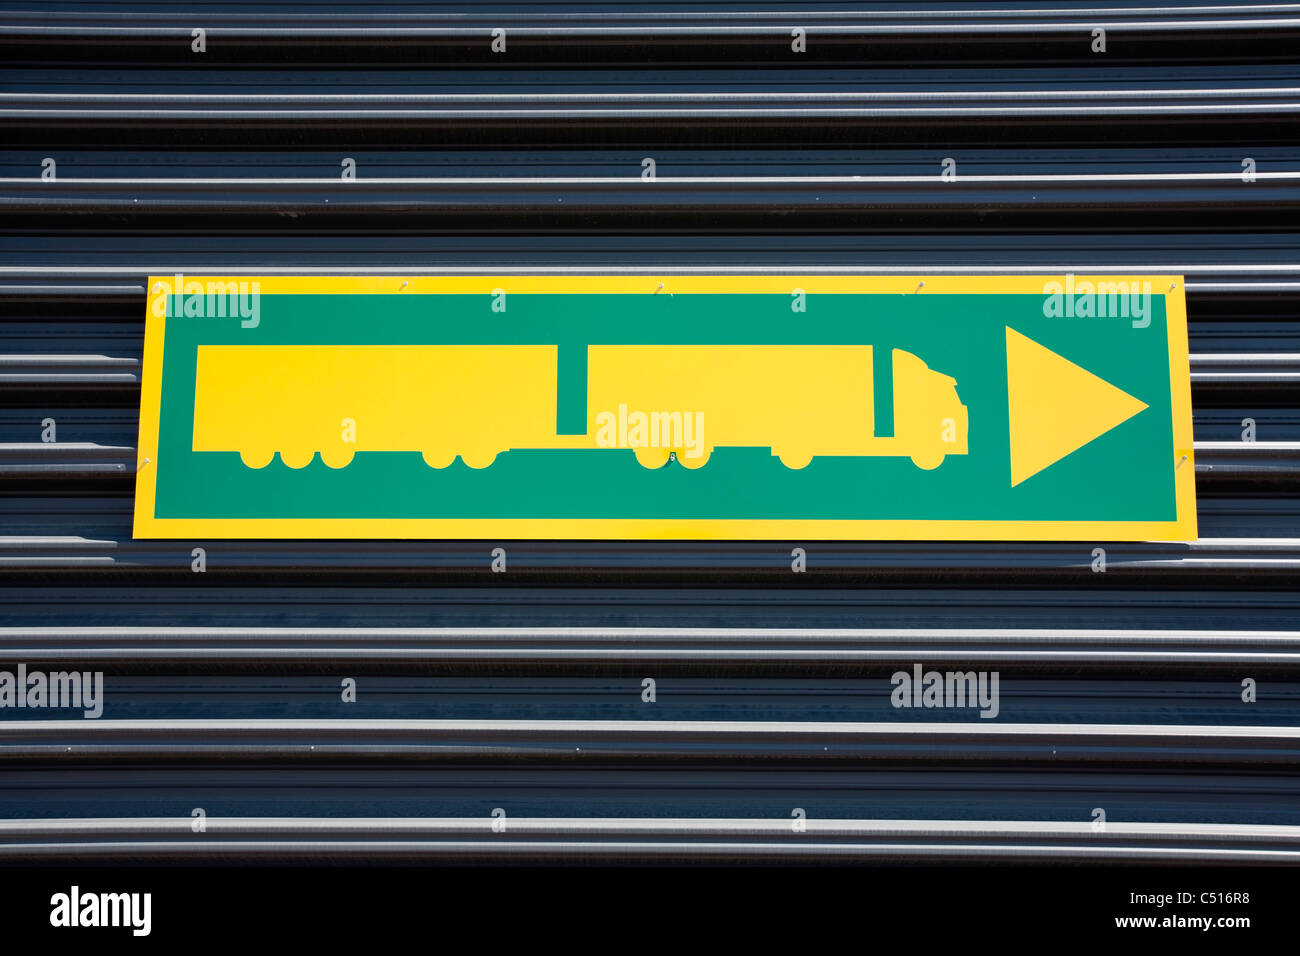 truck guidance sign on warehouse wall - Stock Image